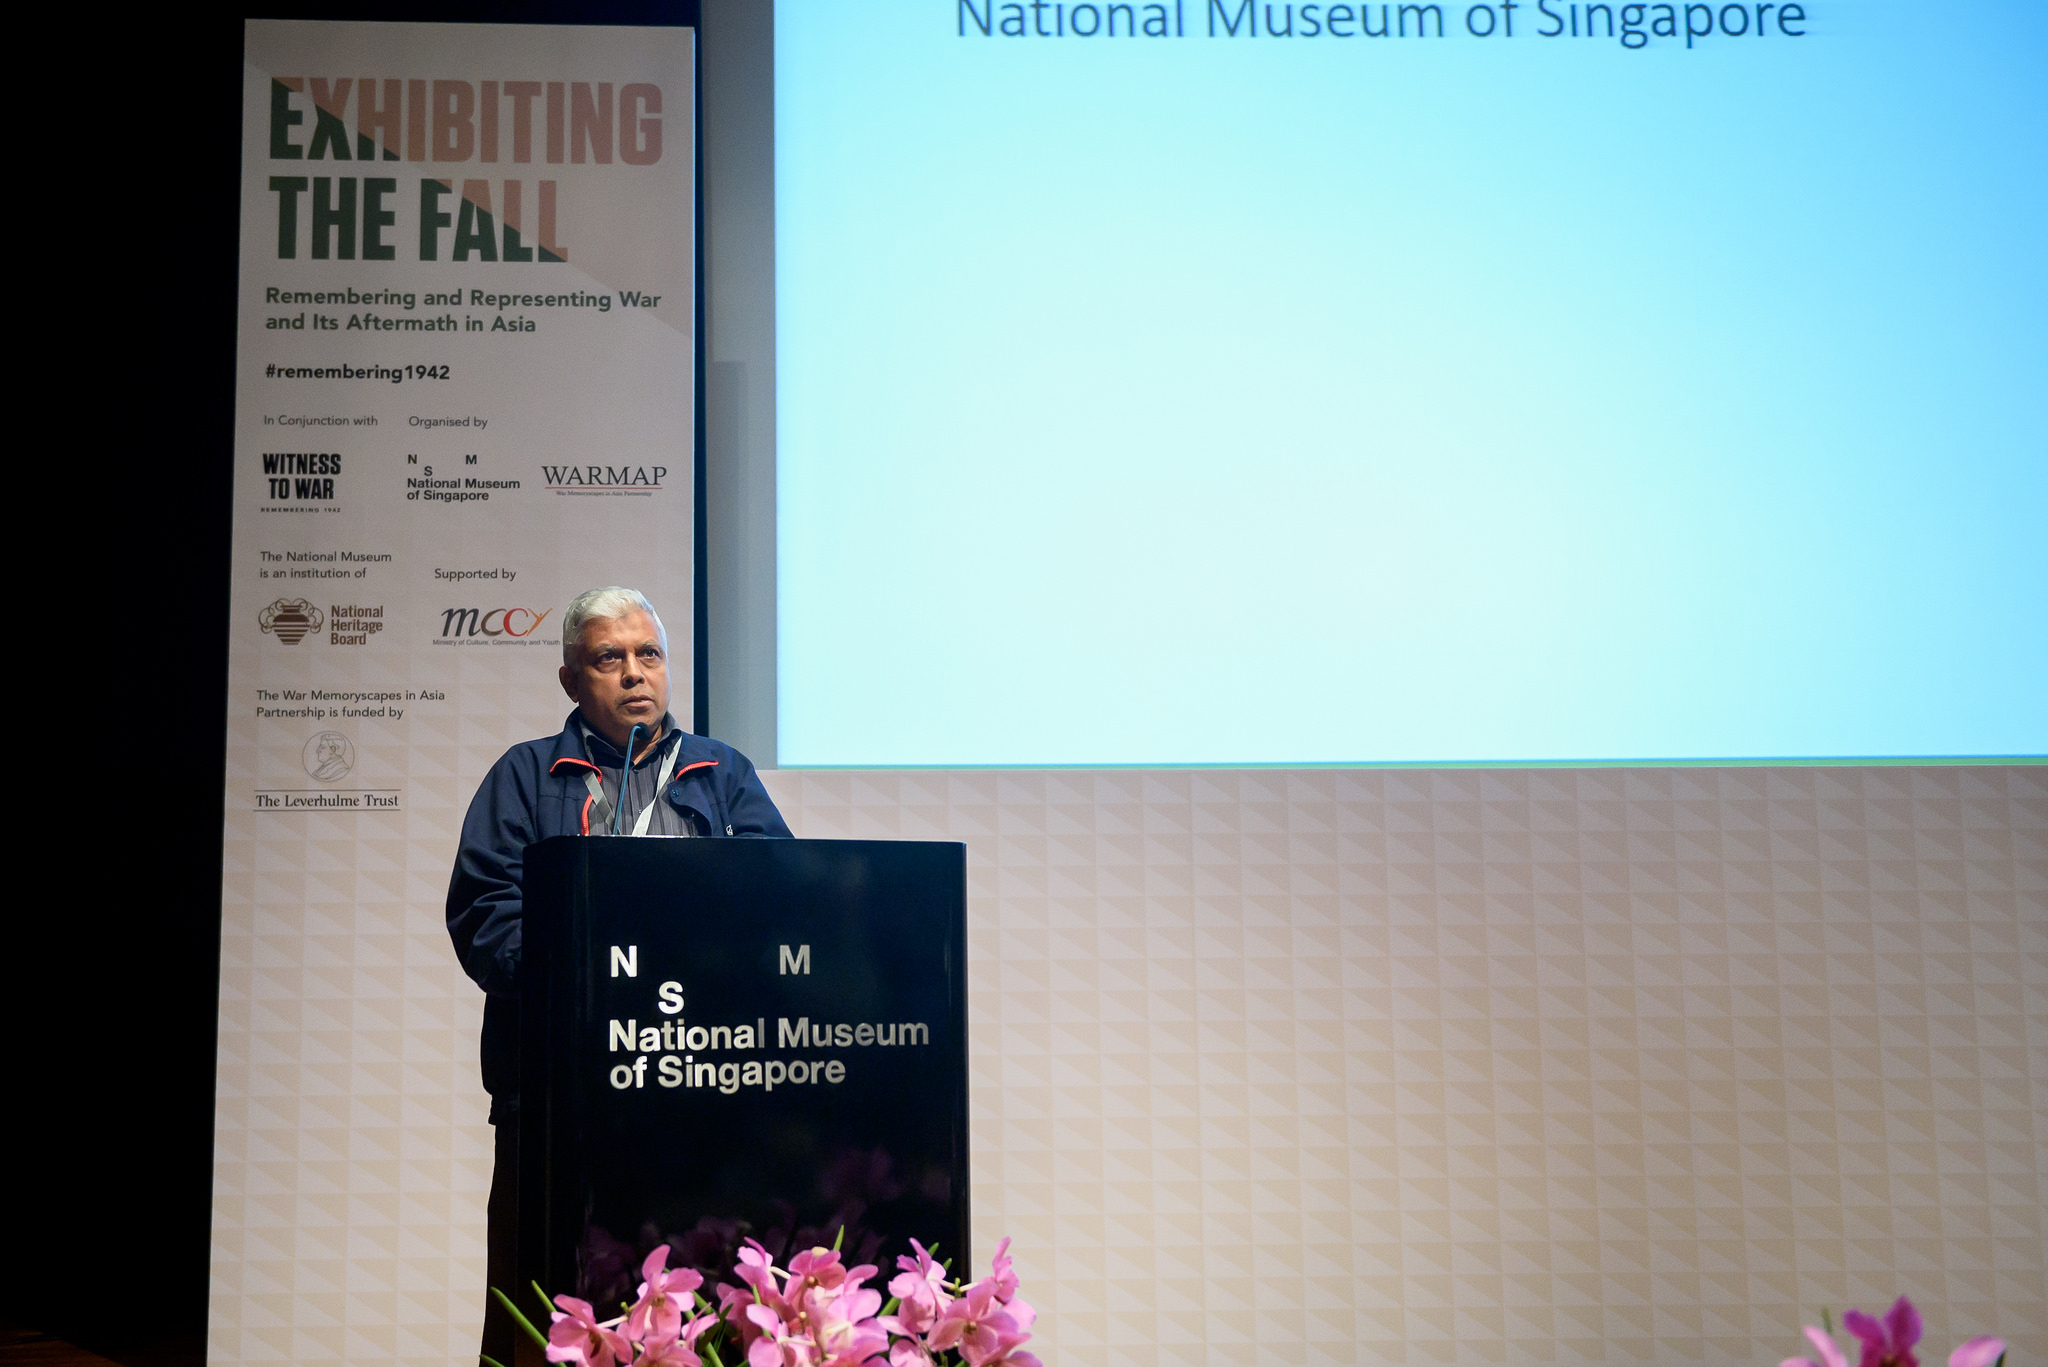 Image courtesy of the National Museum of Singapore, National Heritage Board